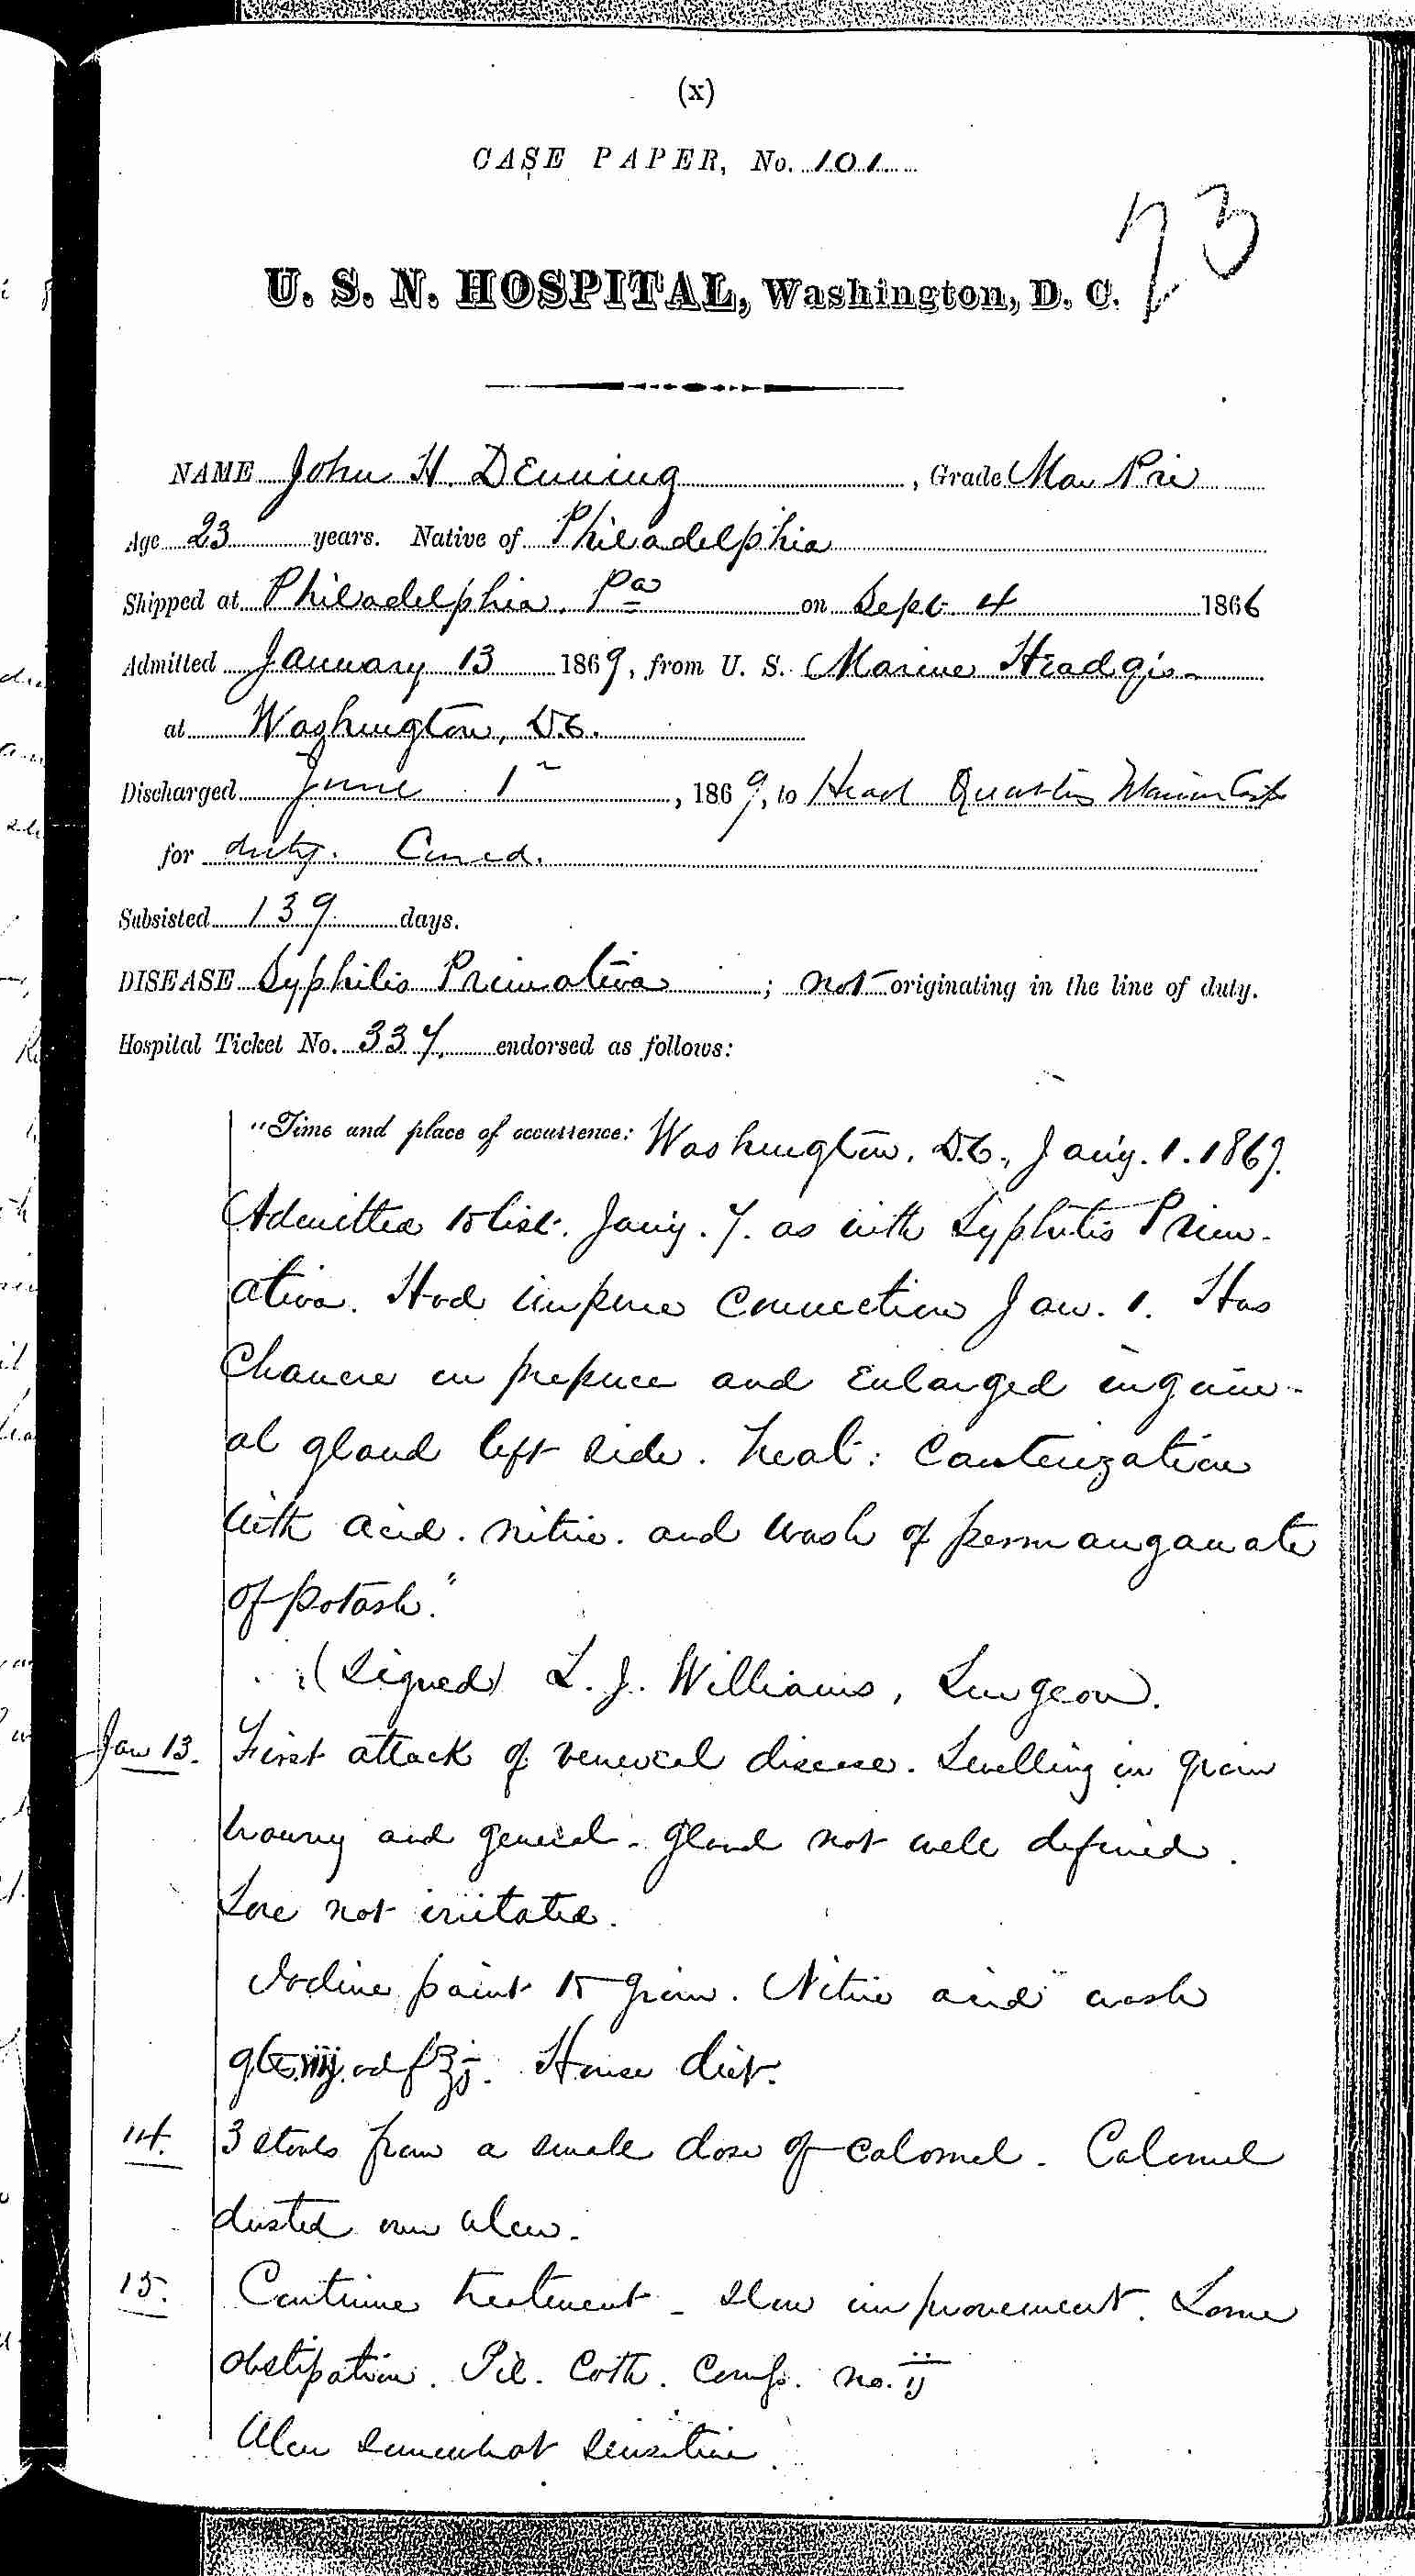 Entry for John H. Denning (first admission page 1 of 9) in the log Hospital Tickets and Case Papers - Naval Hospital - Washington, D.C. - 1868-69